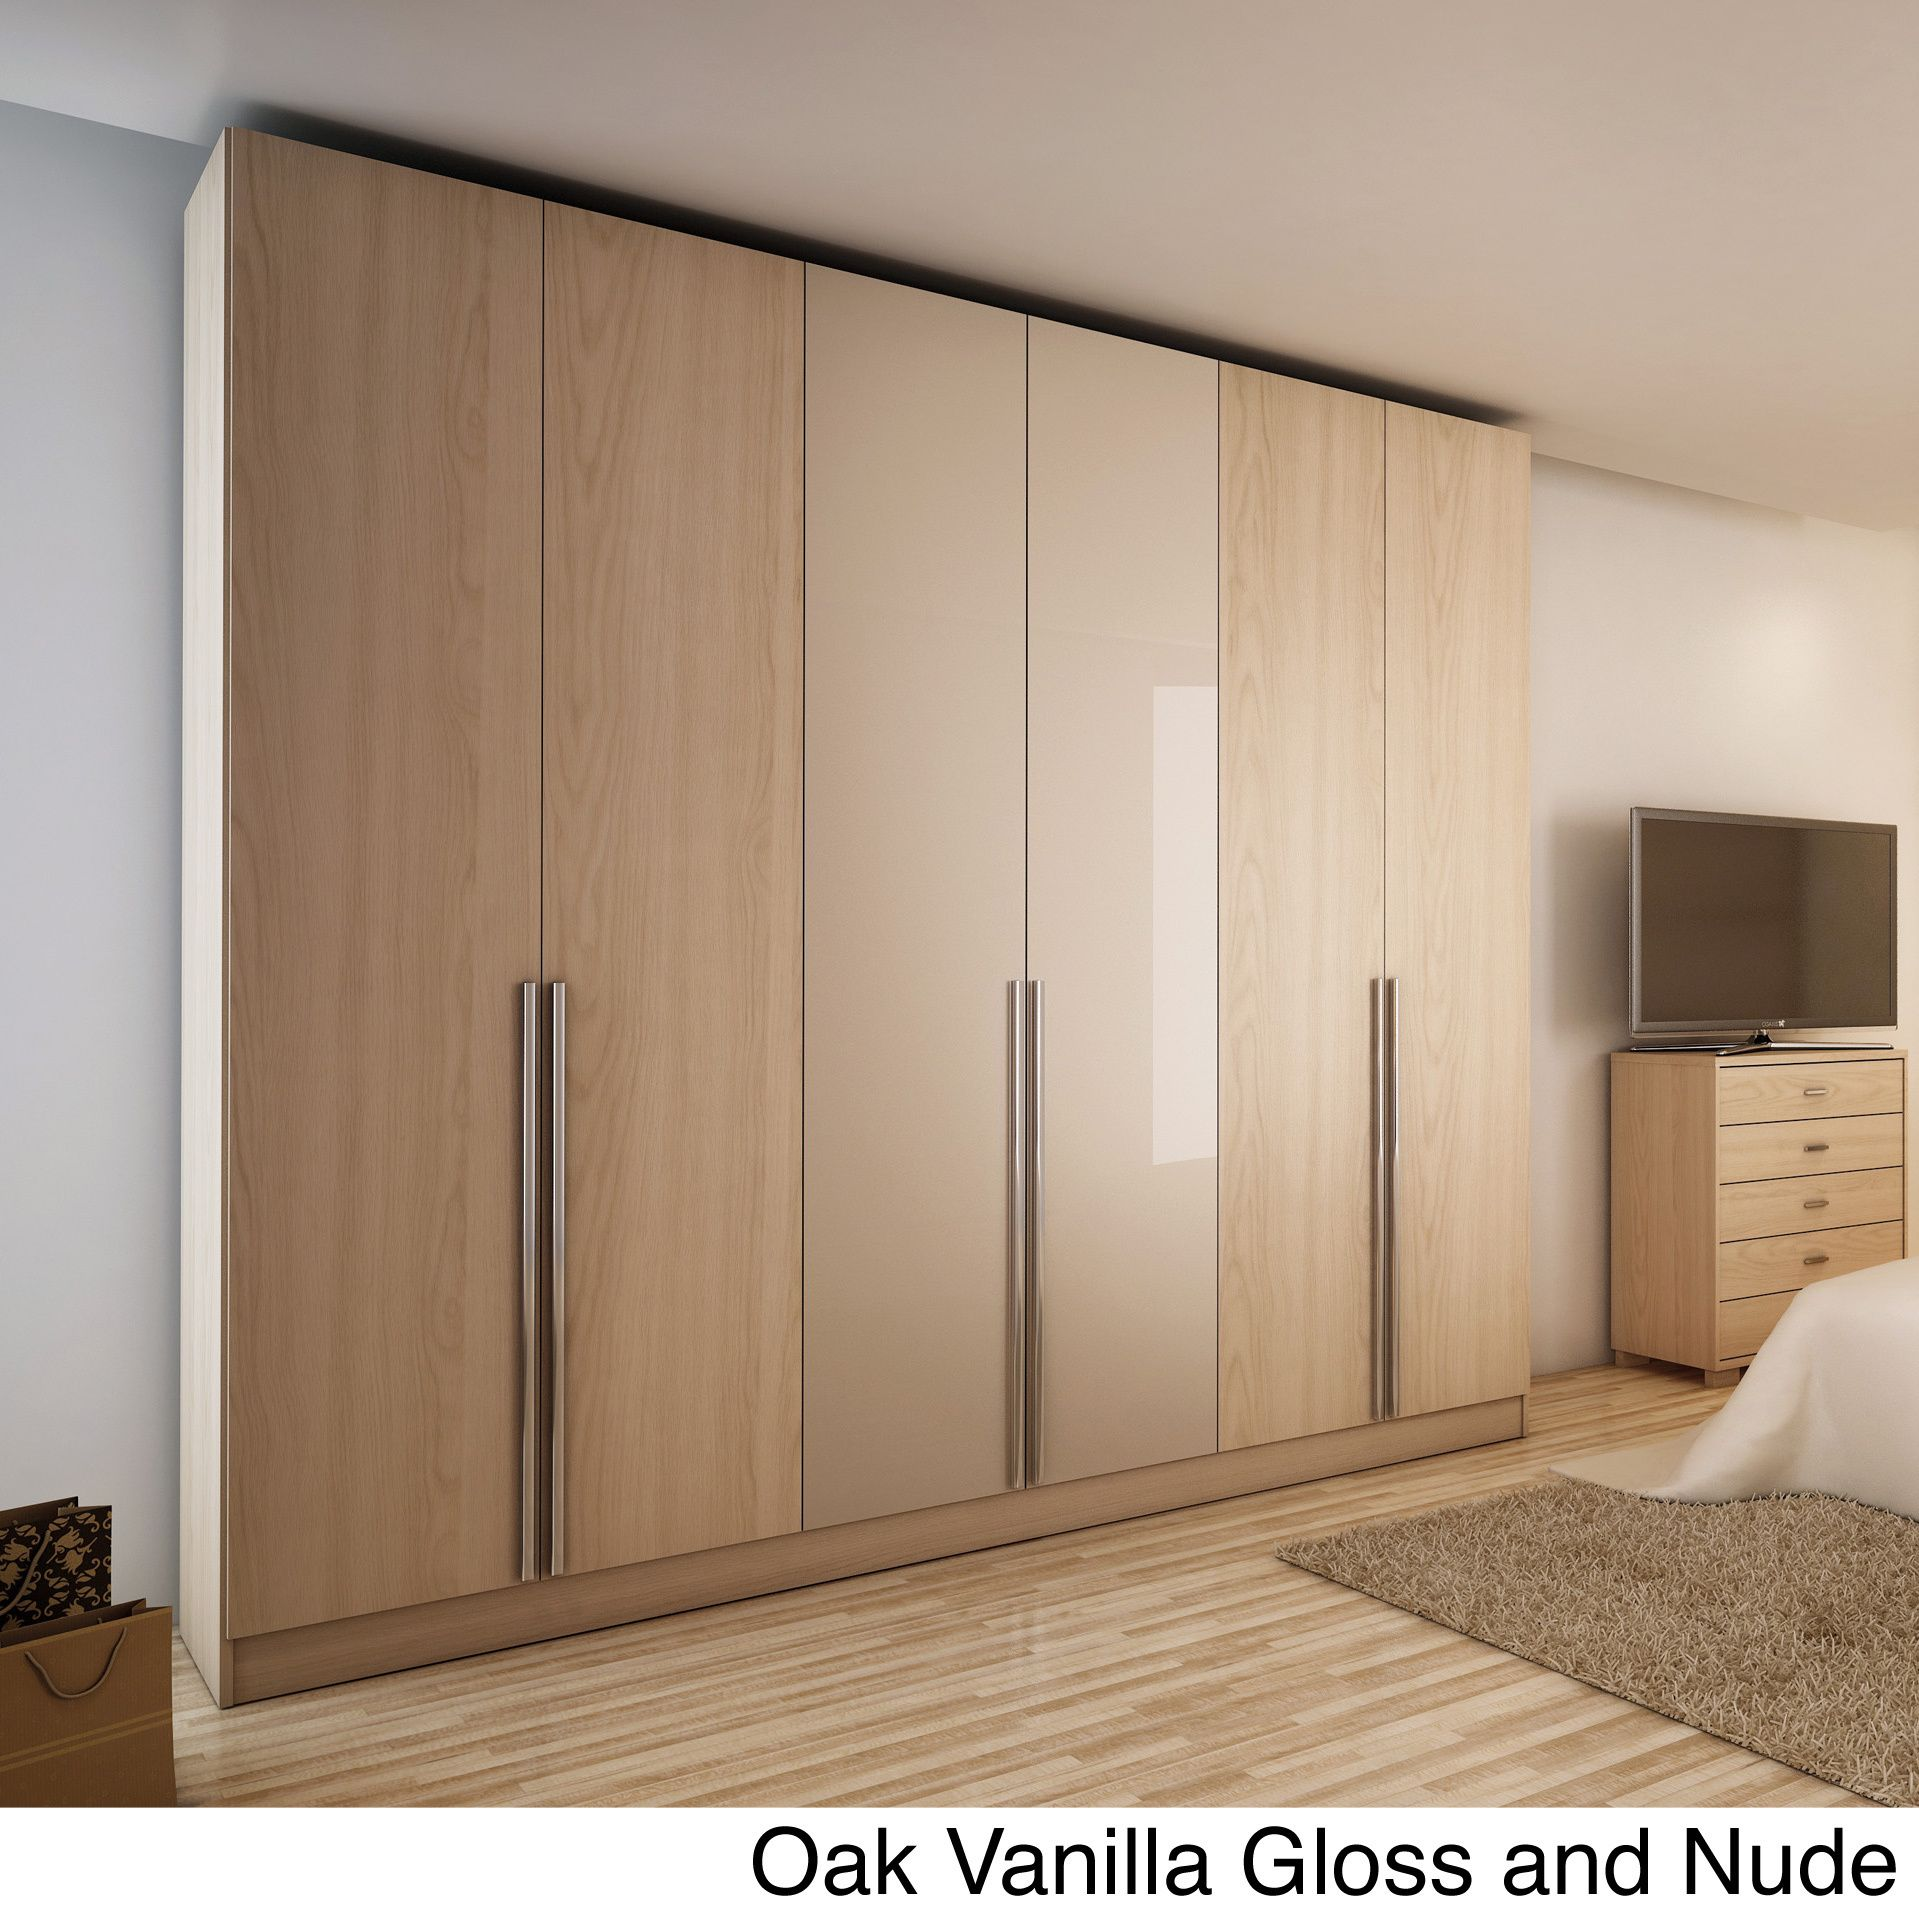 Naked Kitchen Cabinet Doors: Manhattan Comfort 'Downtown' 6-door Wardrobe (Oak Vanilla